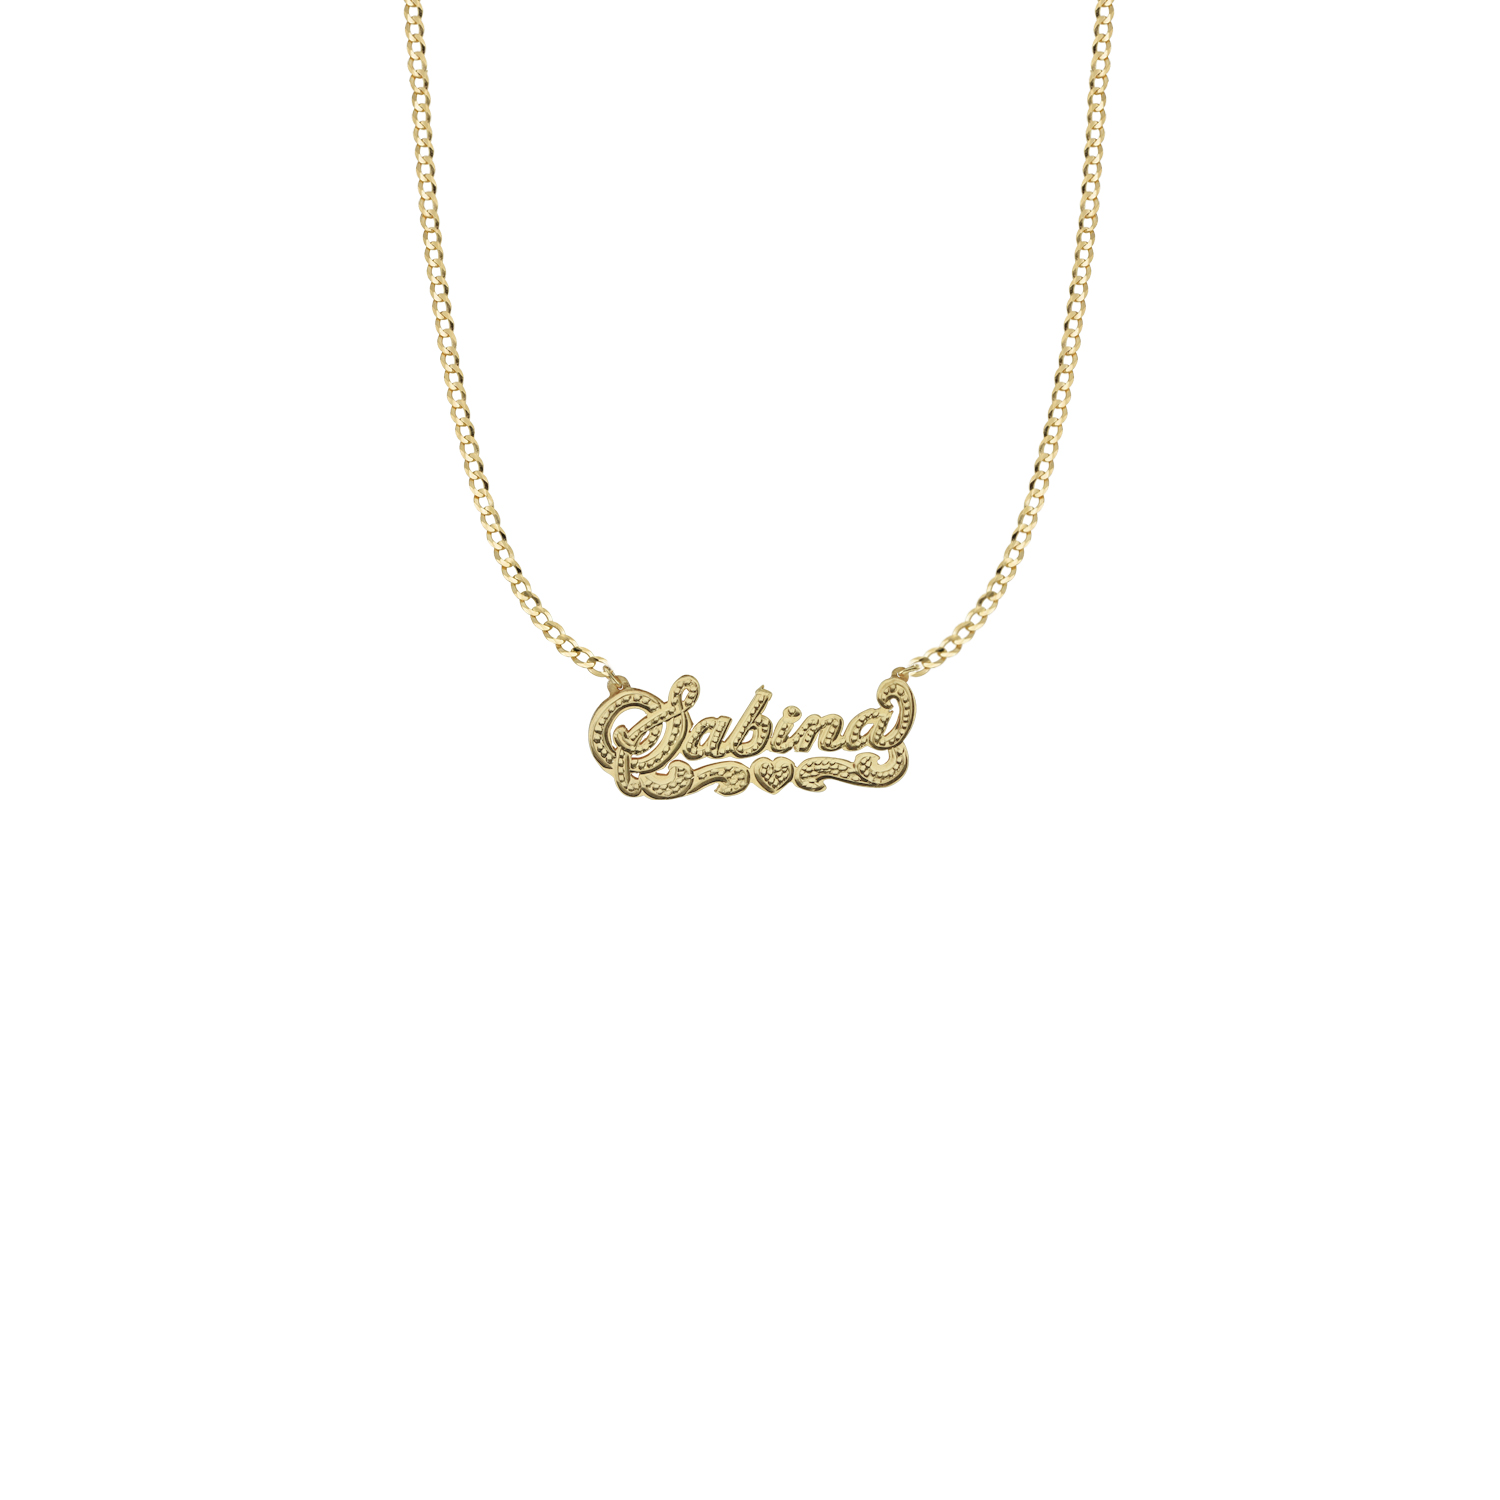 THE DOUBLE PLATE CLASSIC NAMEPLATE NECKLACE — The M Jewelers